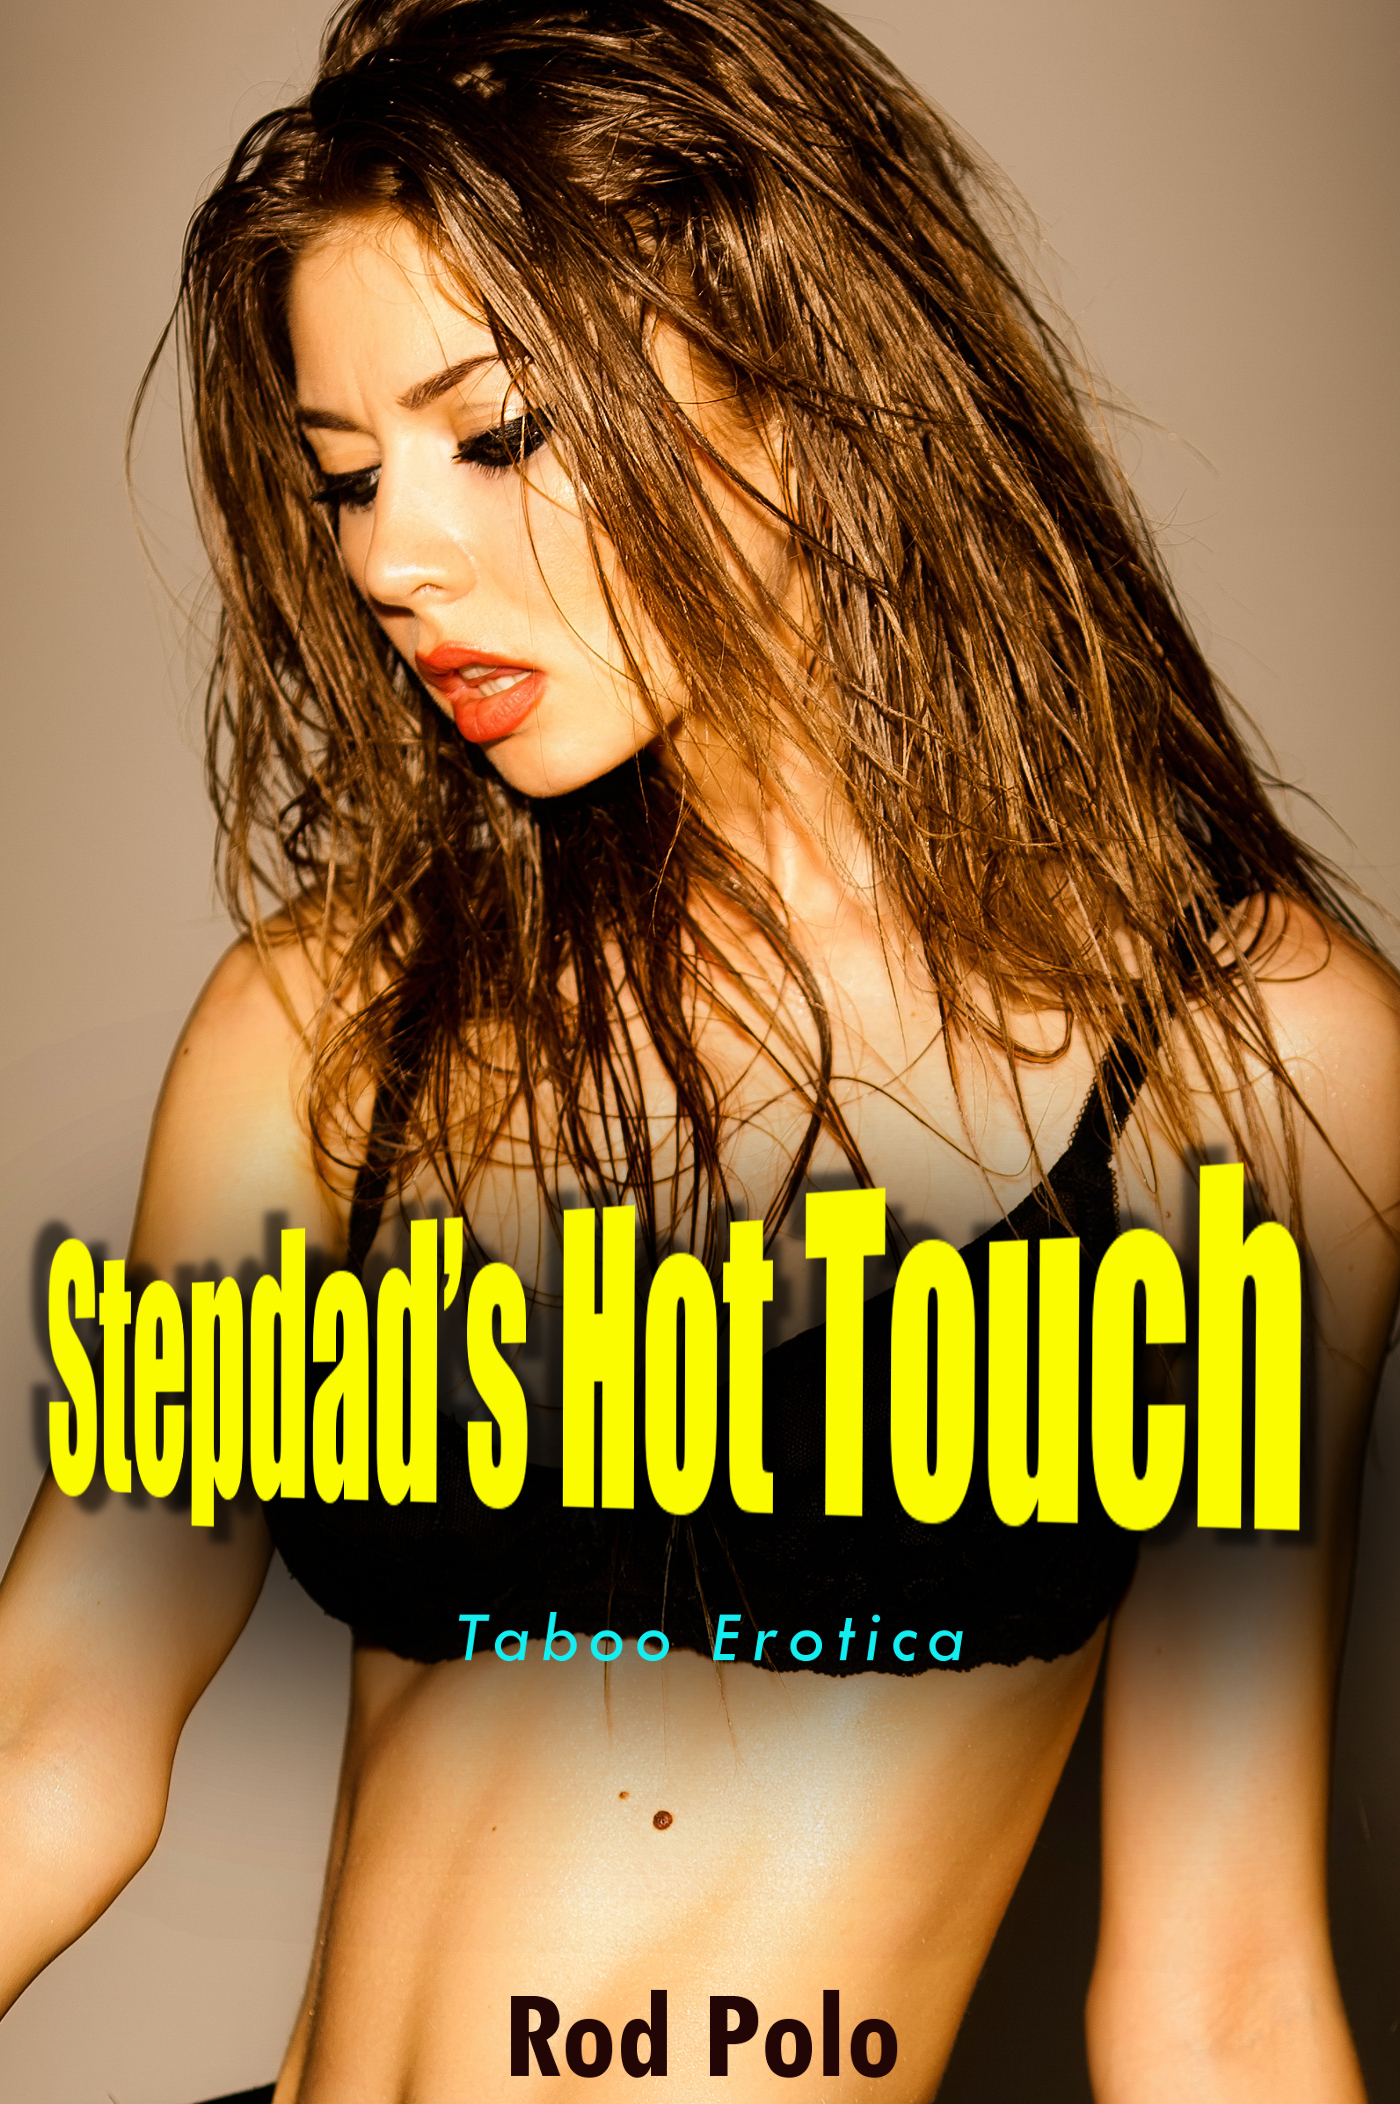 Stepdad's Hot Touch  by  Rod Polo